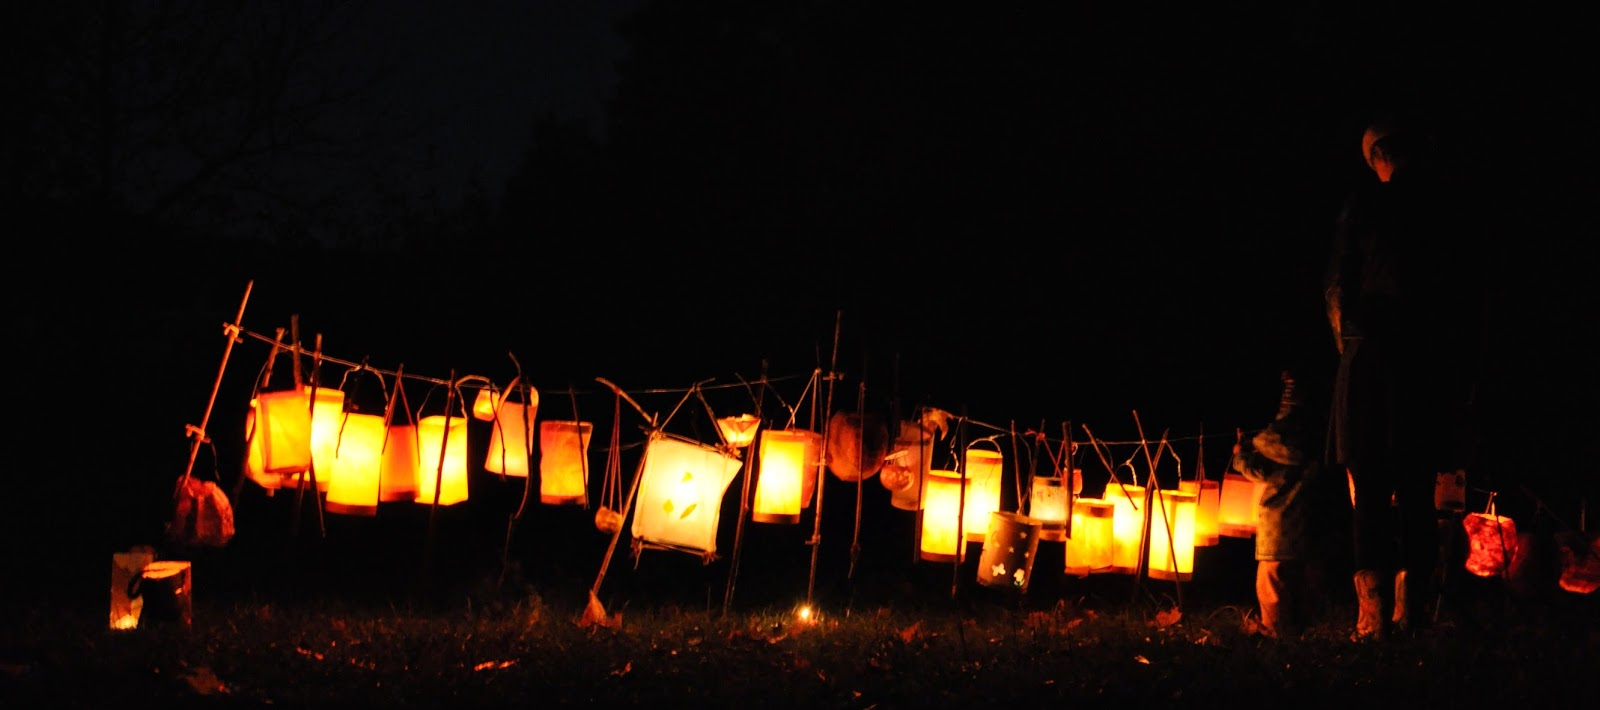 lanterns of st. martin